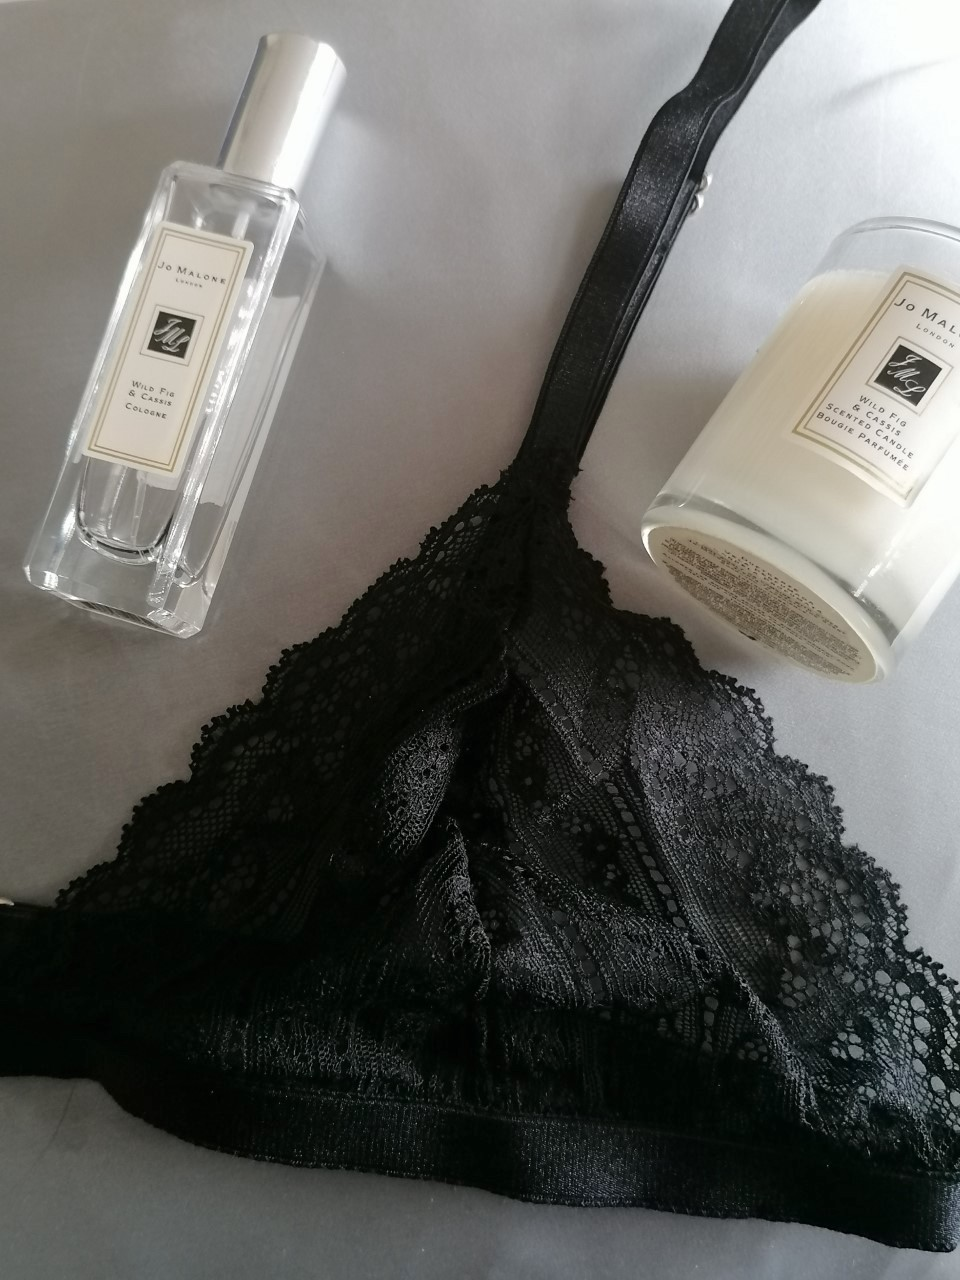 Black Lace Bra from Identity Lingerie